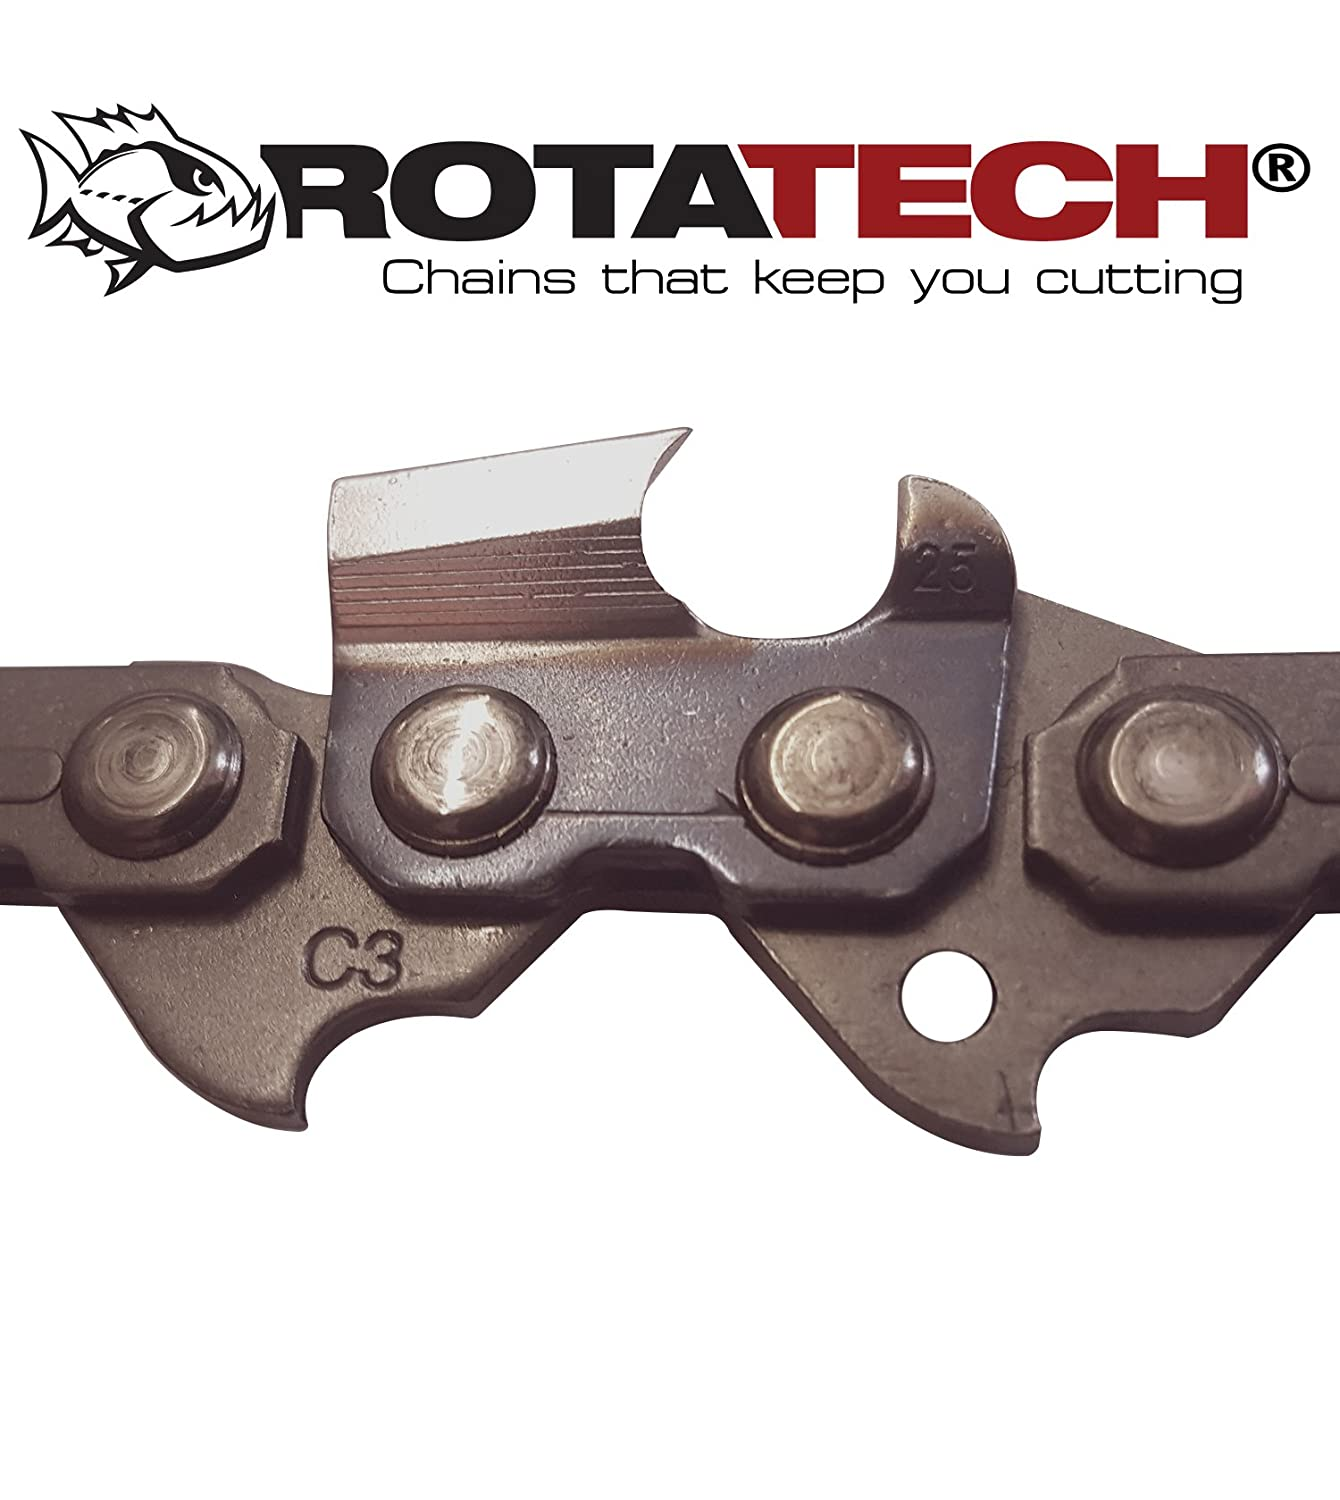 Genuine Rotatech Chainsaw Chain To Fit 58CC 20